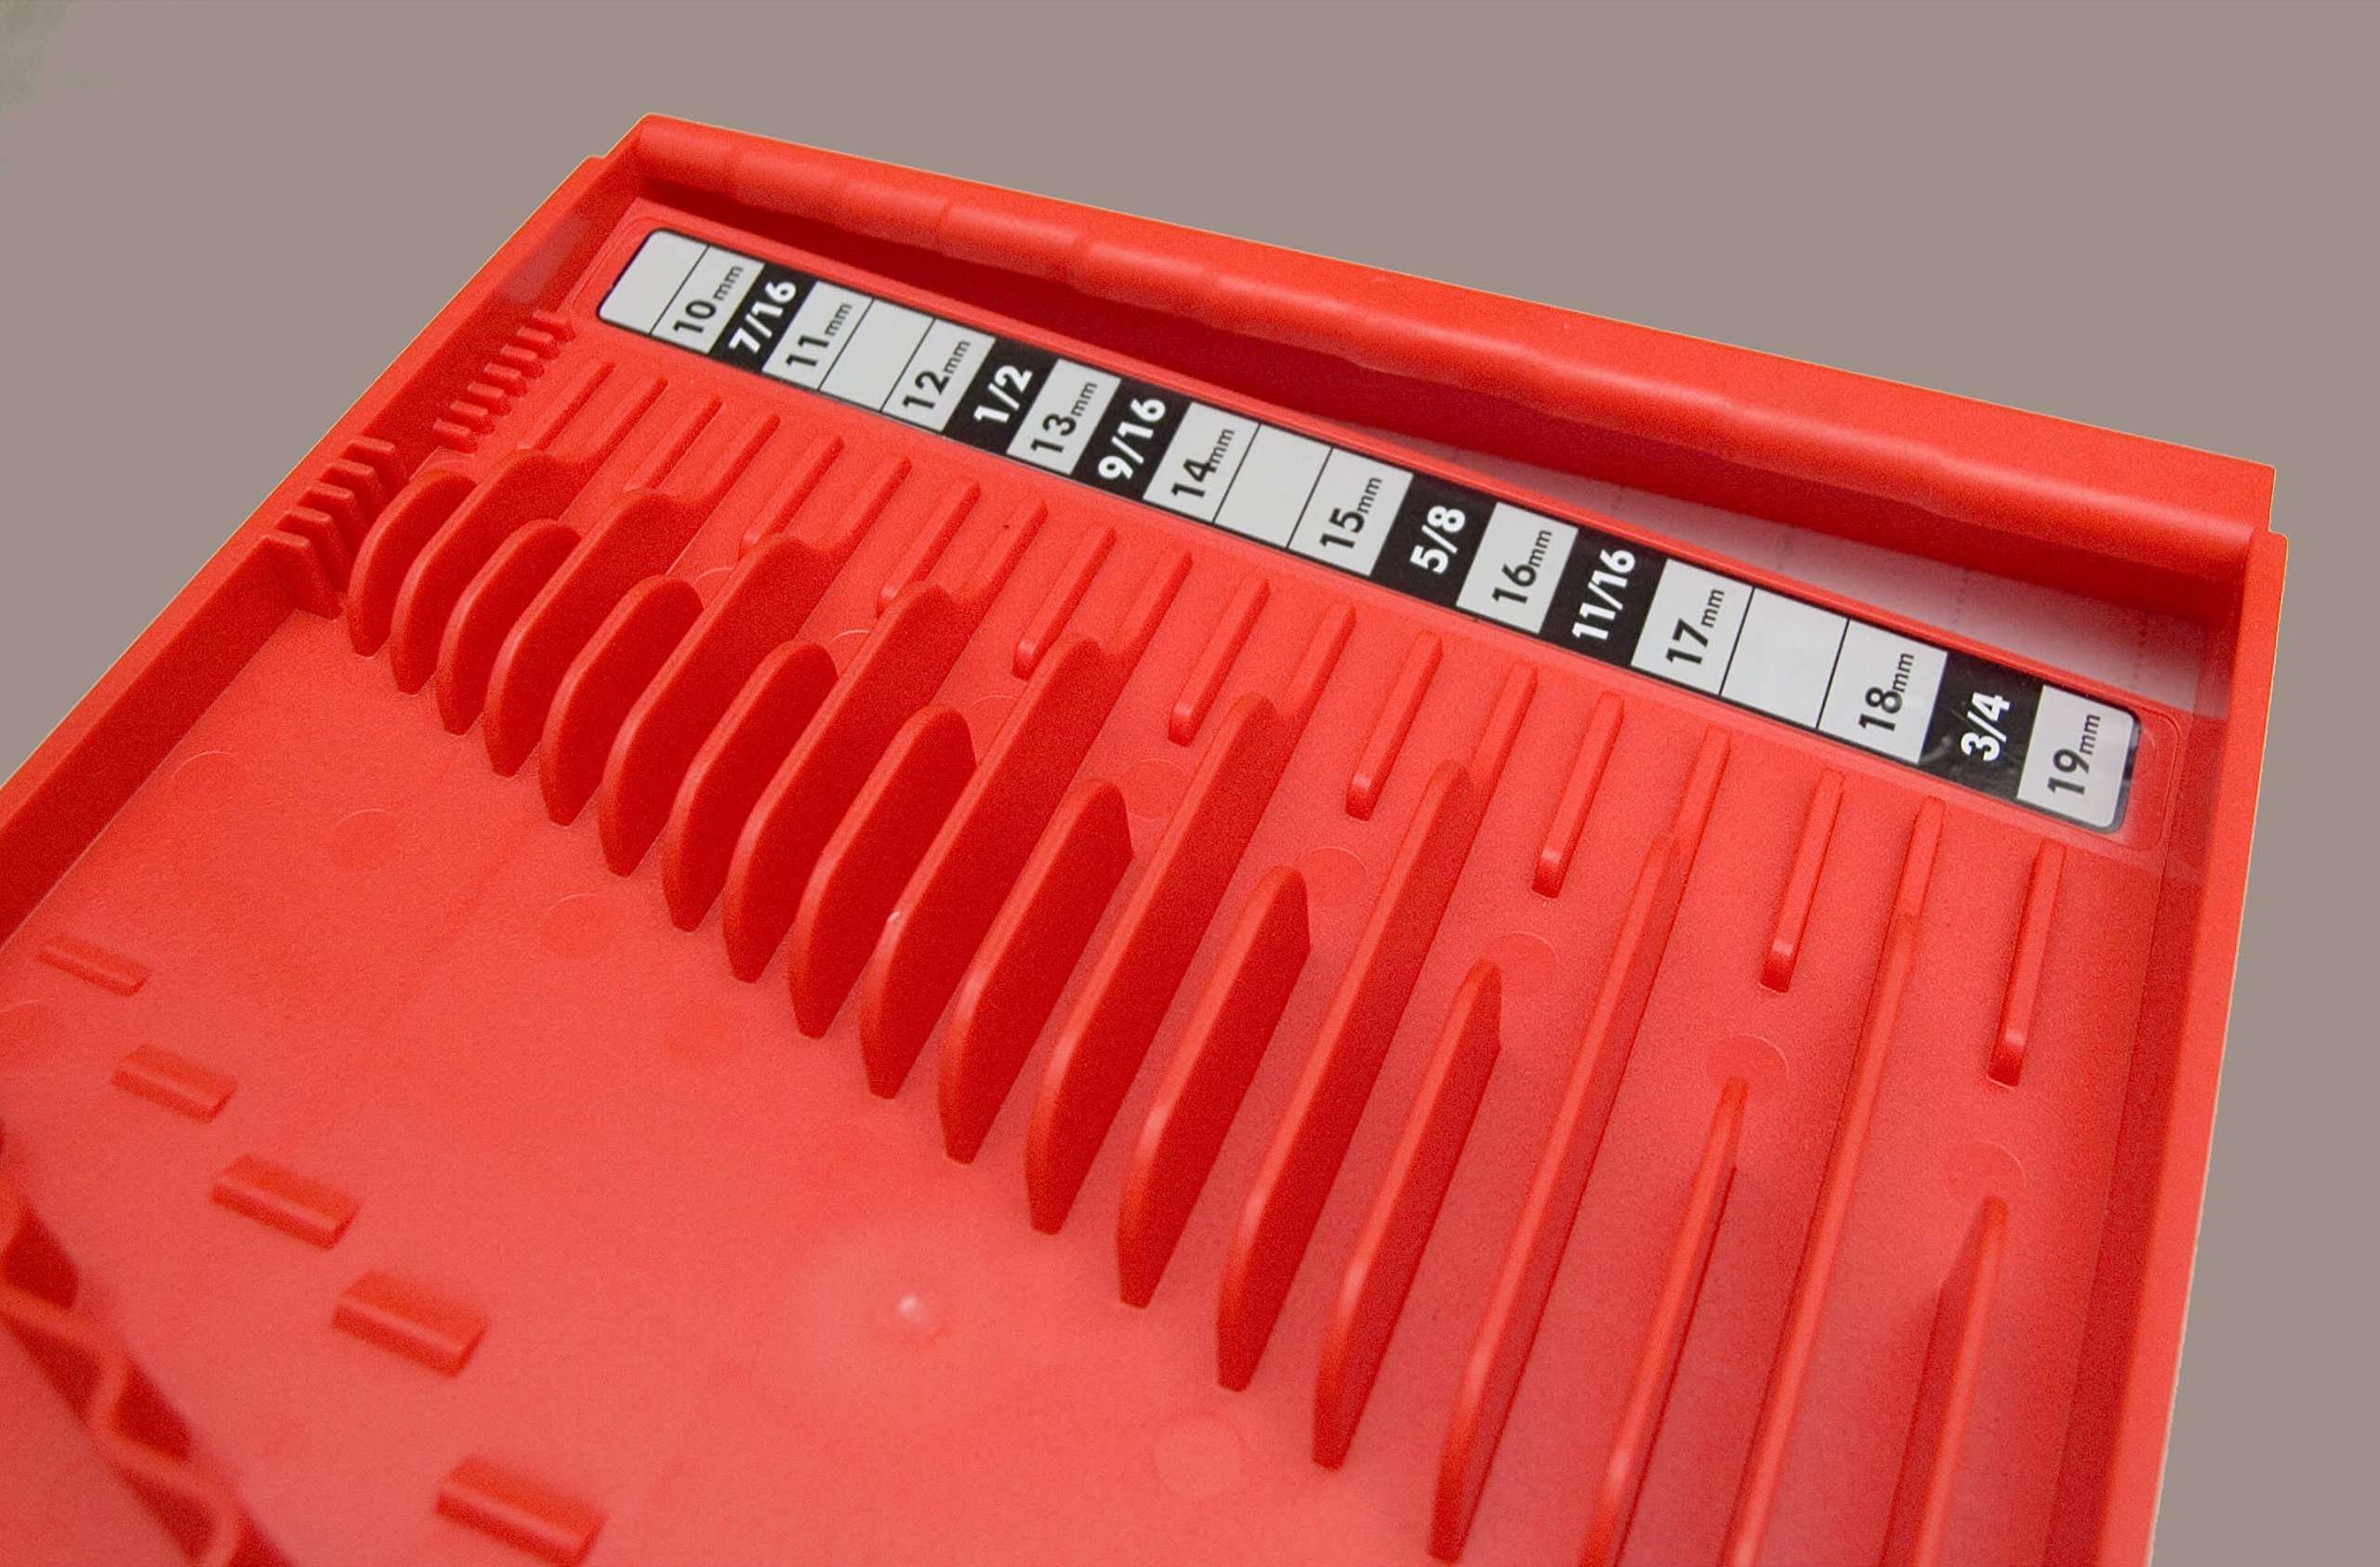 Tool Sorter Wrench Organizer - Red by Tool Sorter (Image #7)